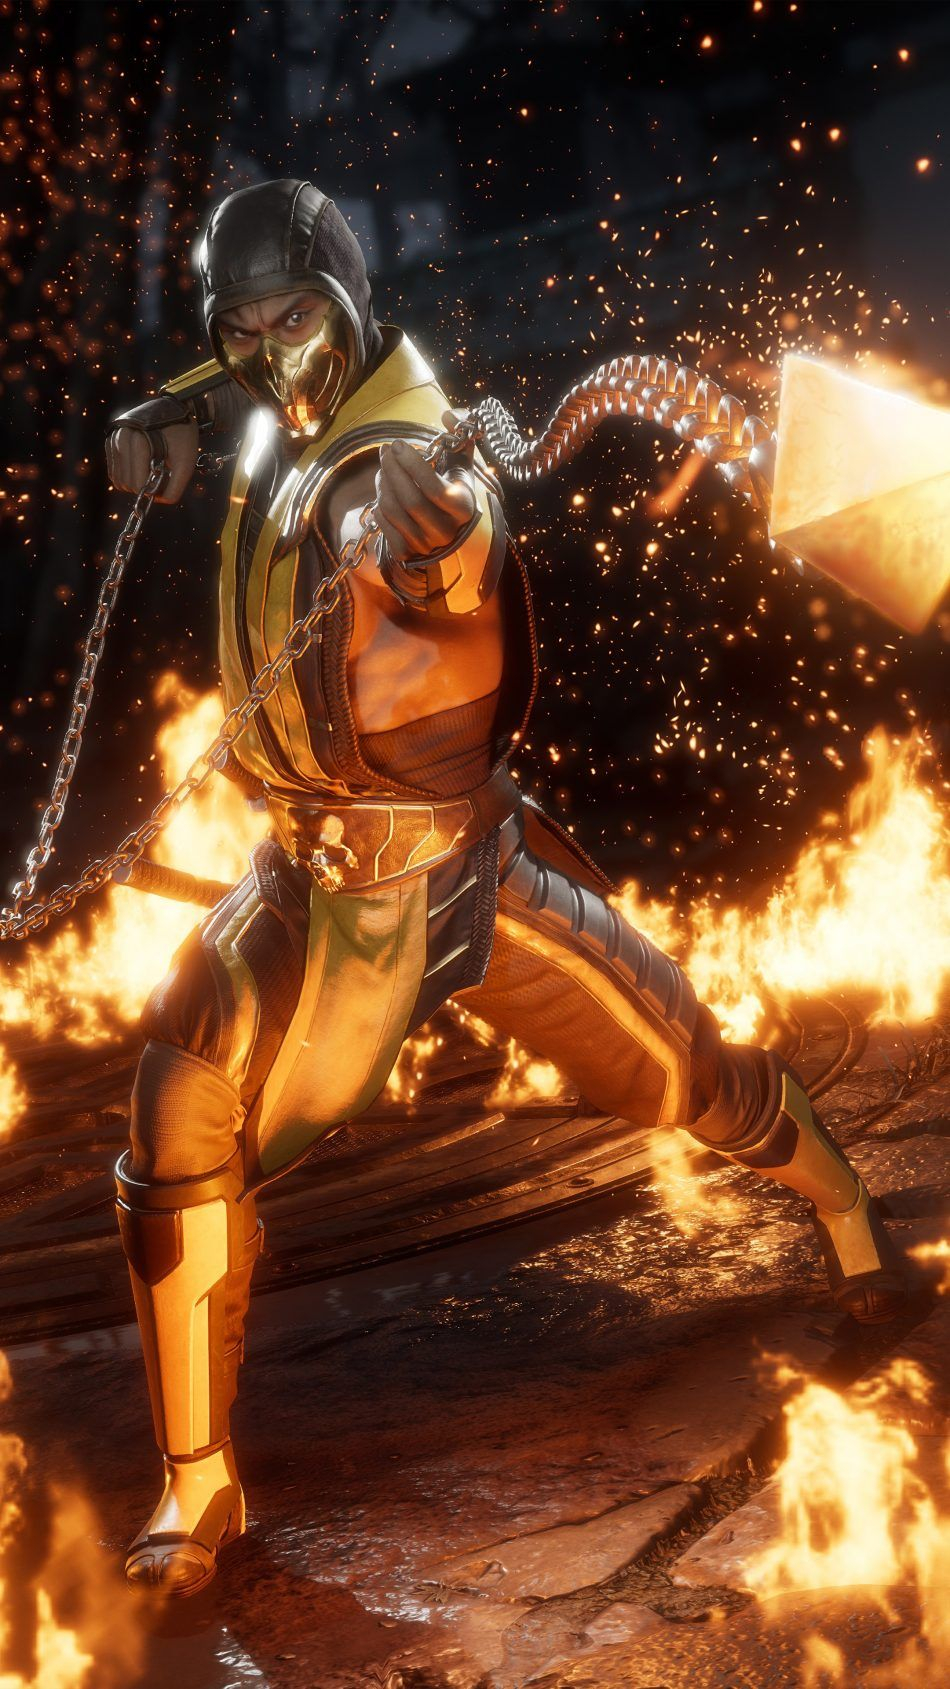 Scorpion Mortal Kombat 11 4K Ultra HD Mobile Wallpaper